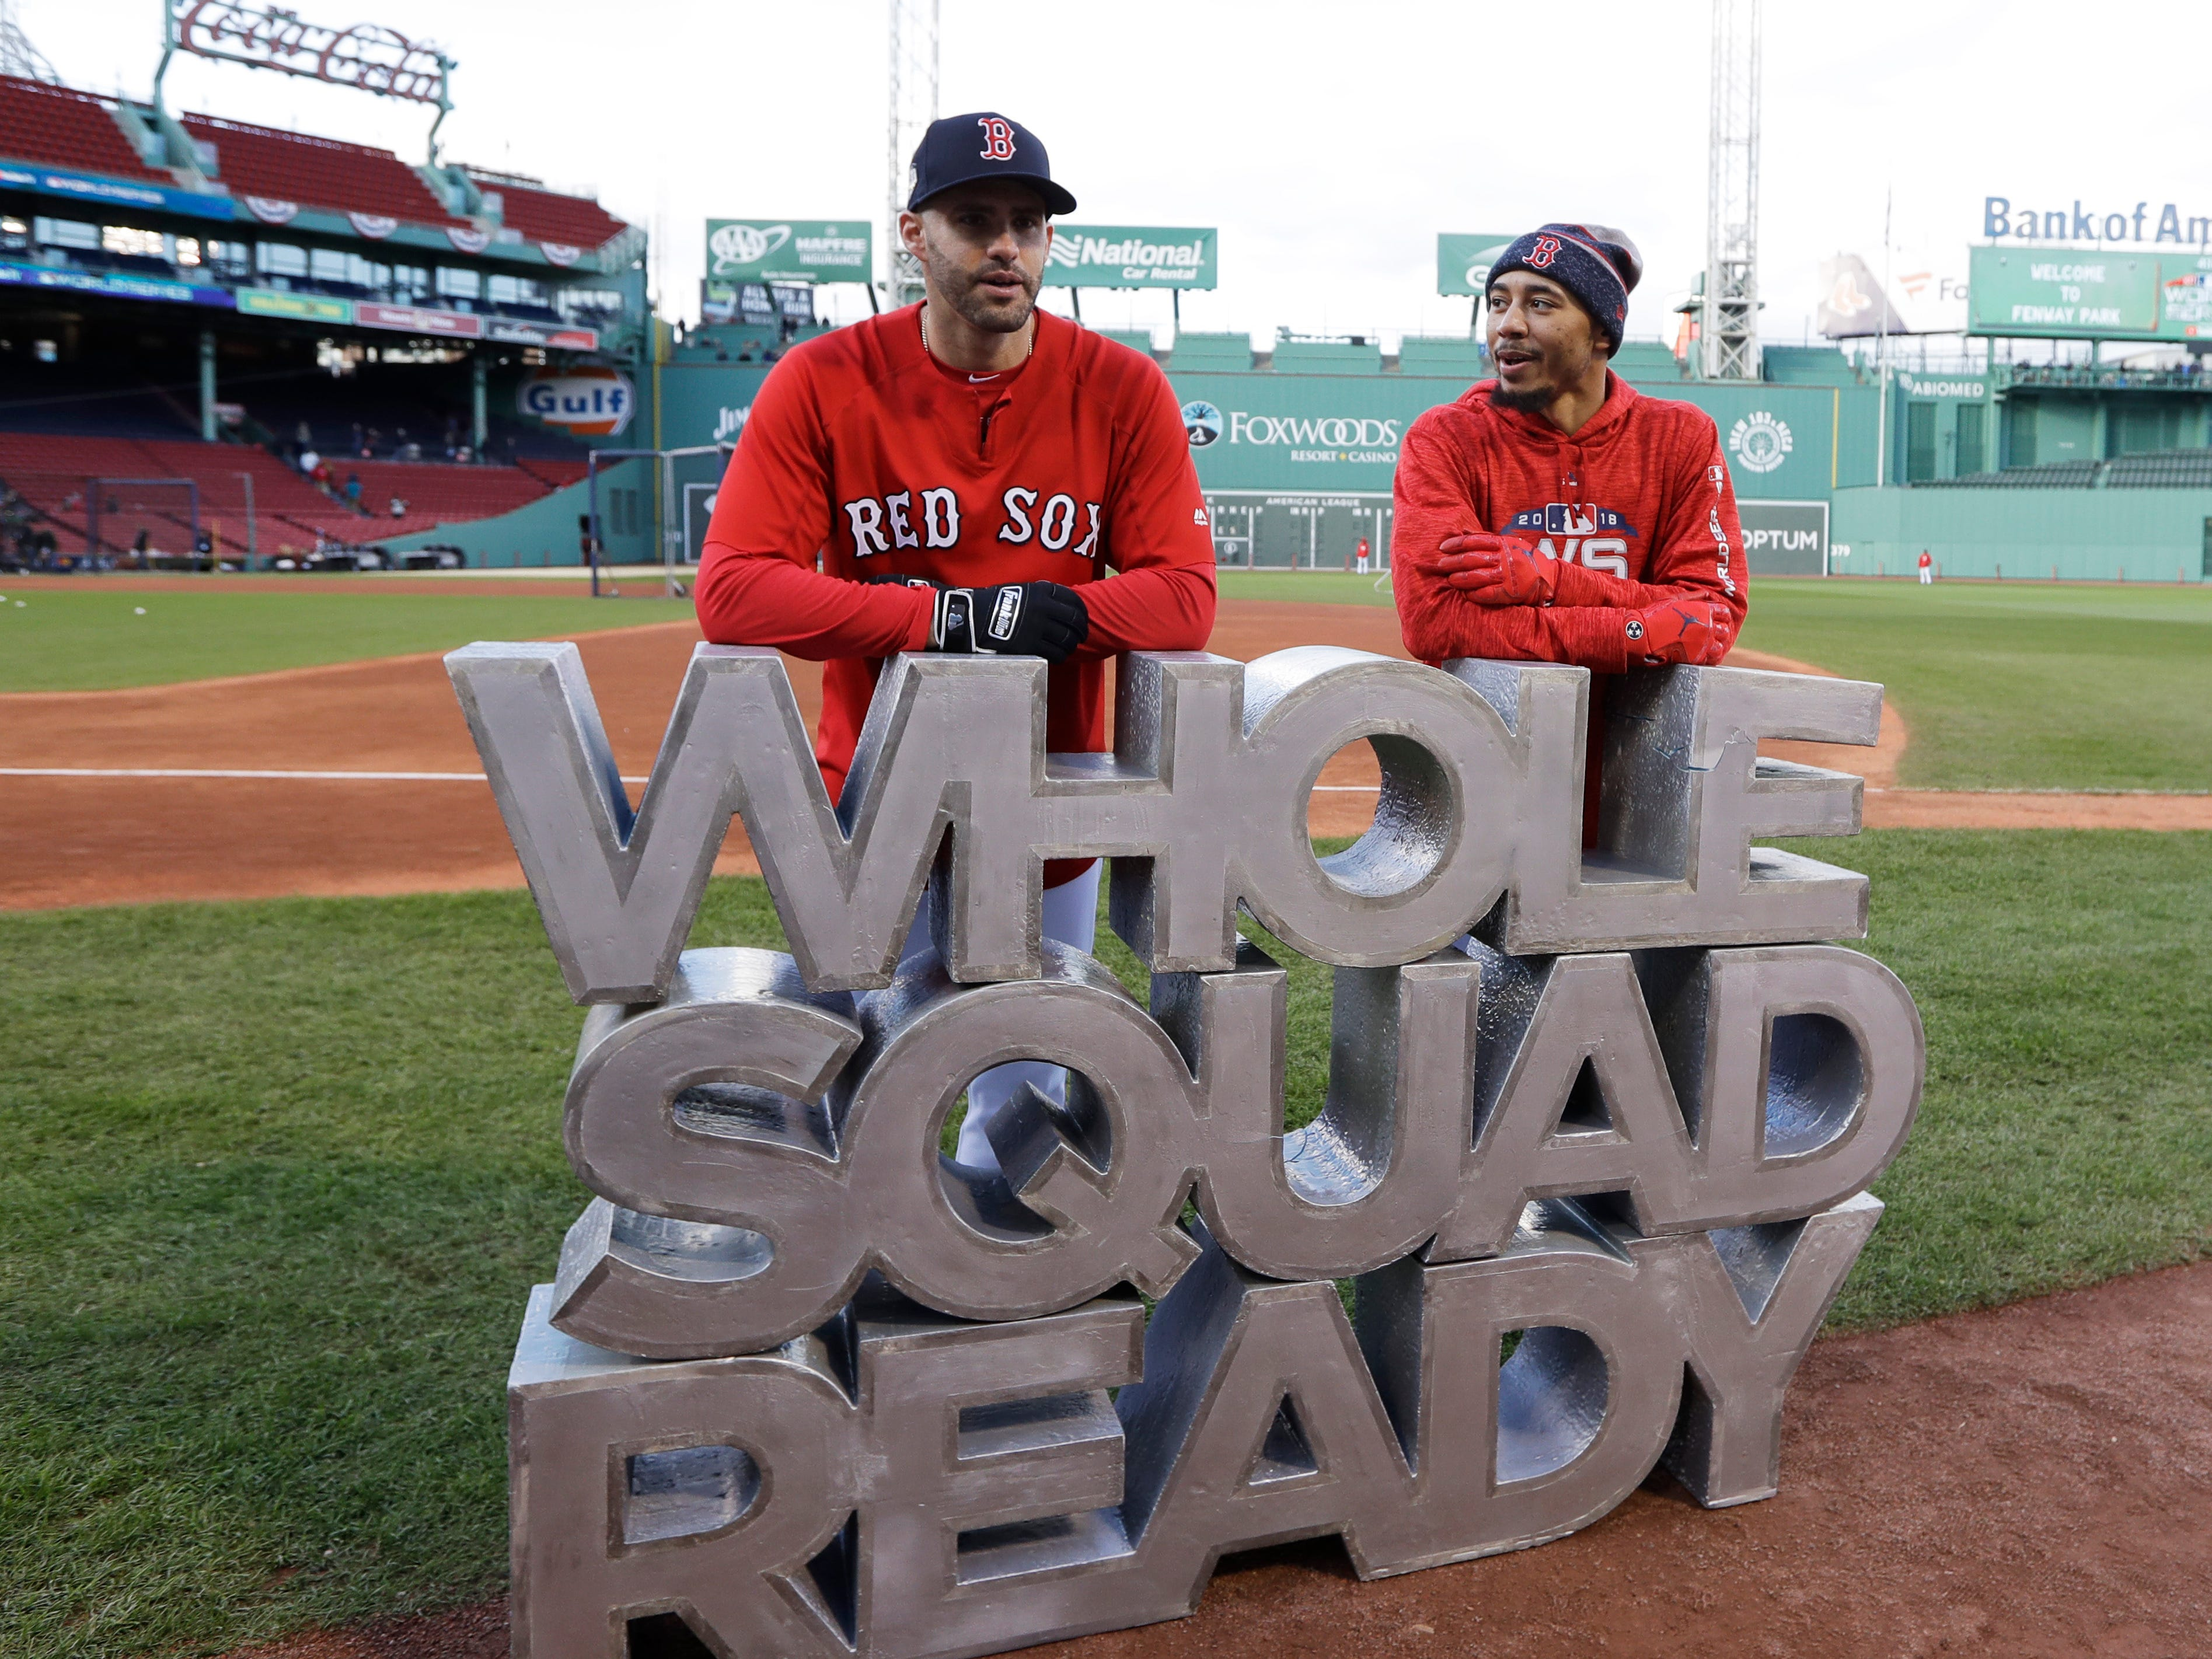 Red Sox's J.D. Martinez, left, speaks Mookie Betts stand behind their motto.